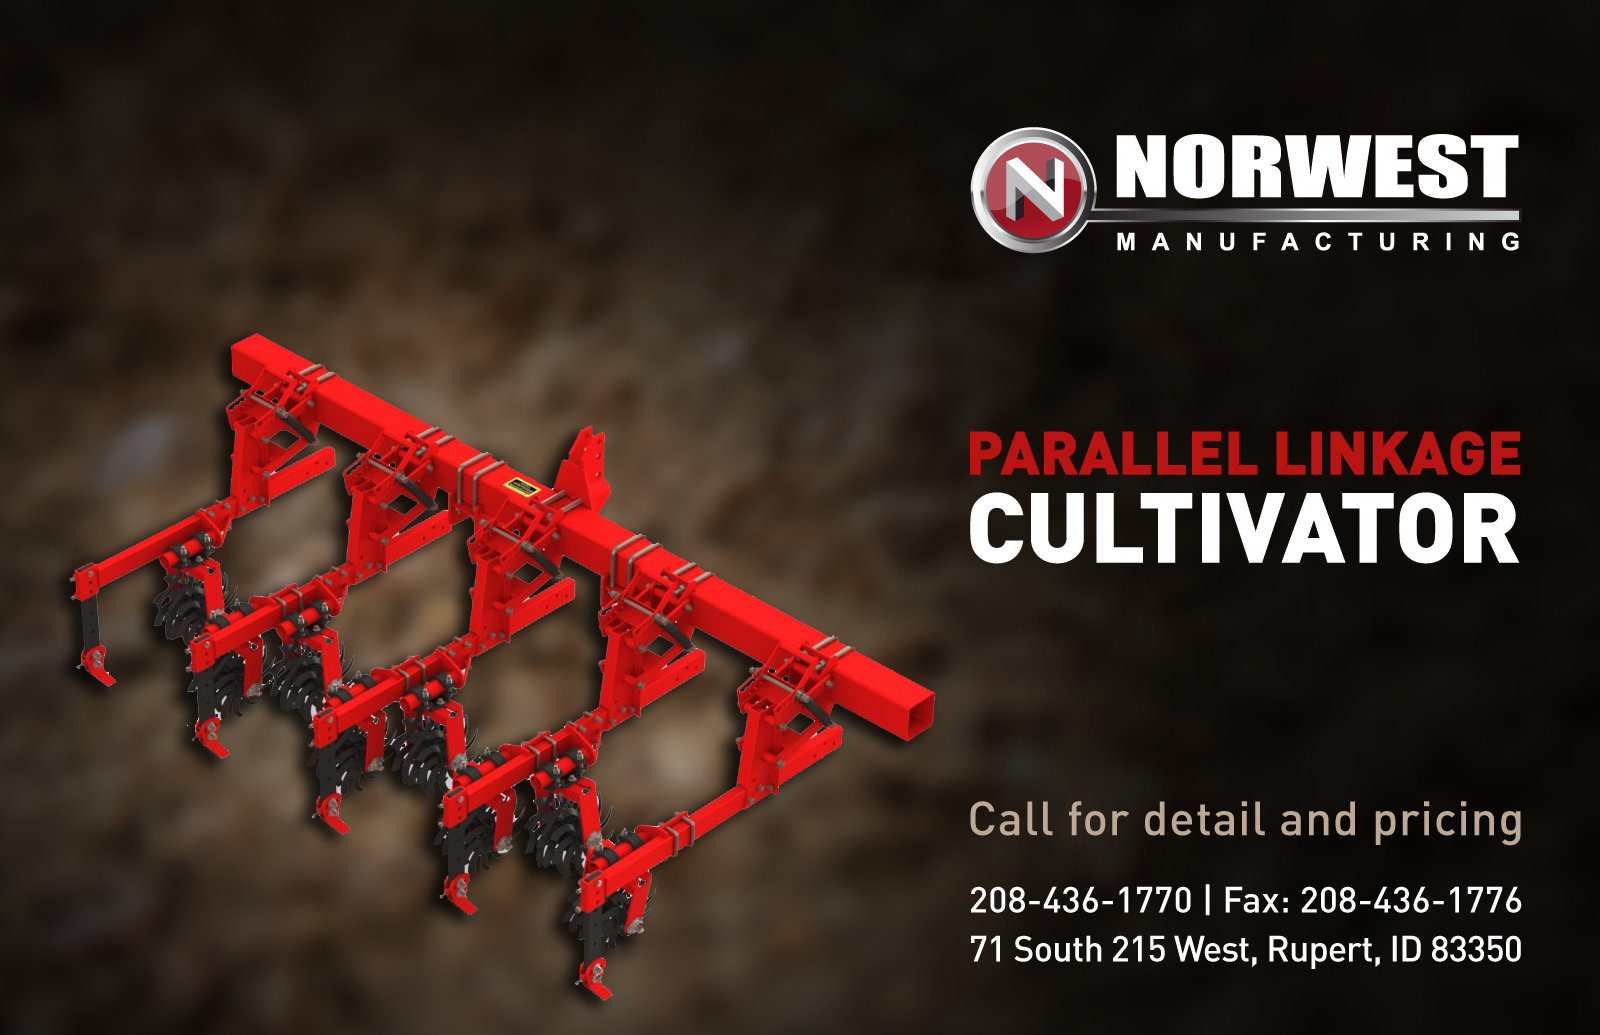 Norwest Parallel Linkage Cultivator